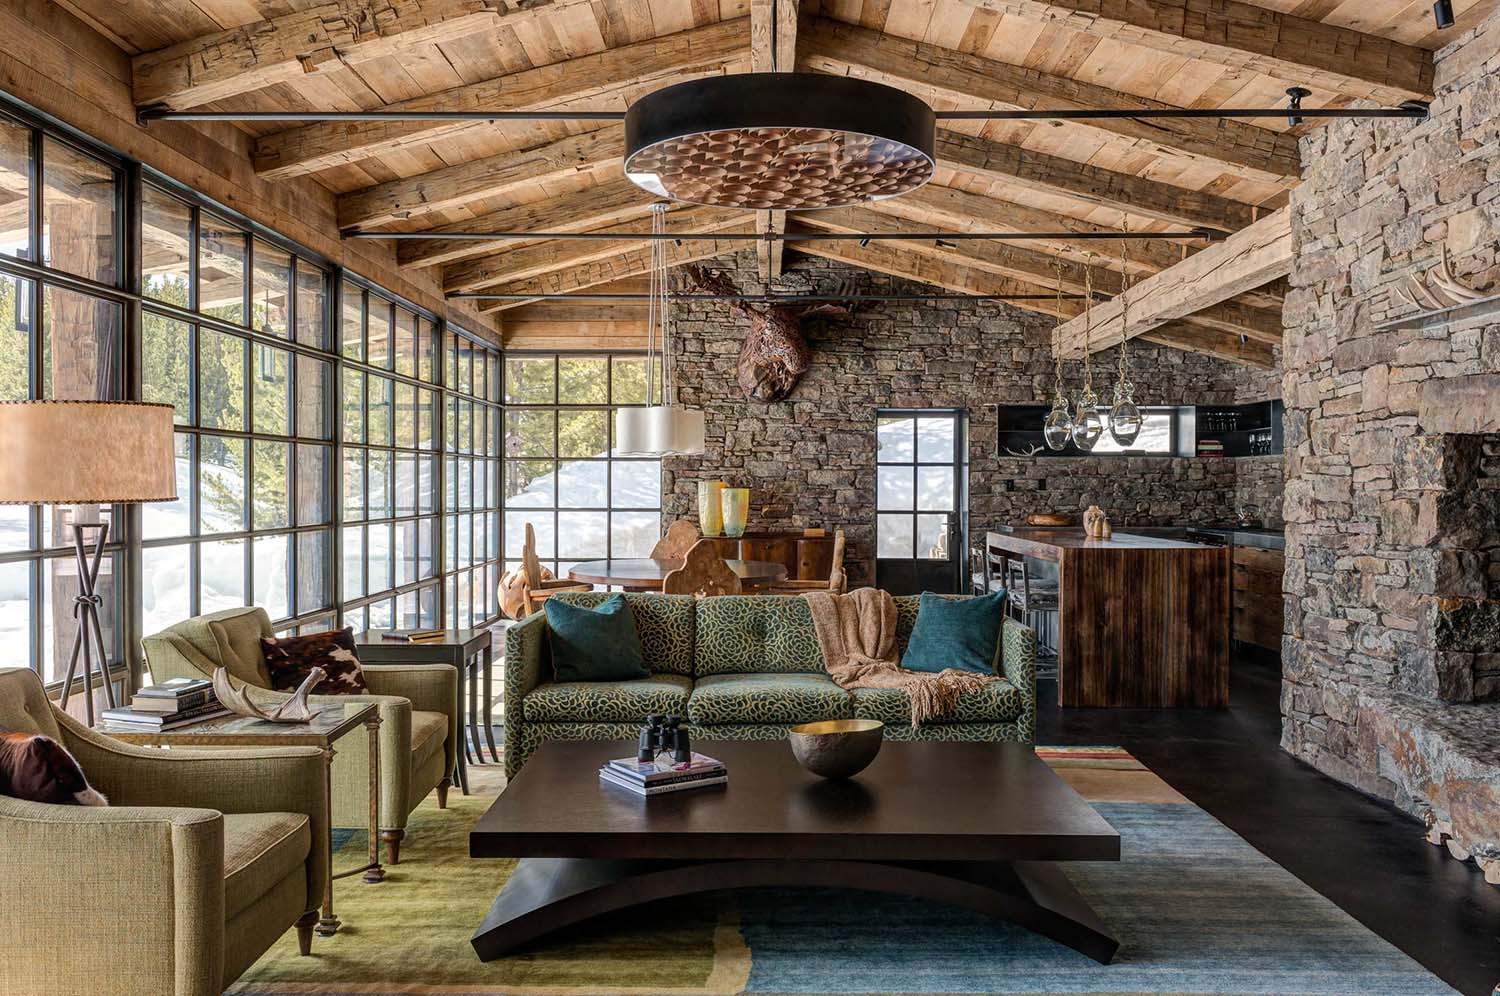 Rustic Decor: What it Means and How to Get The Look